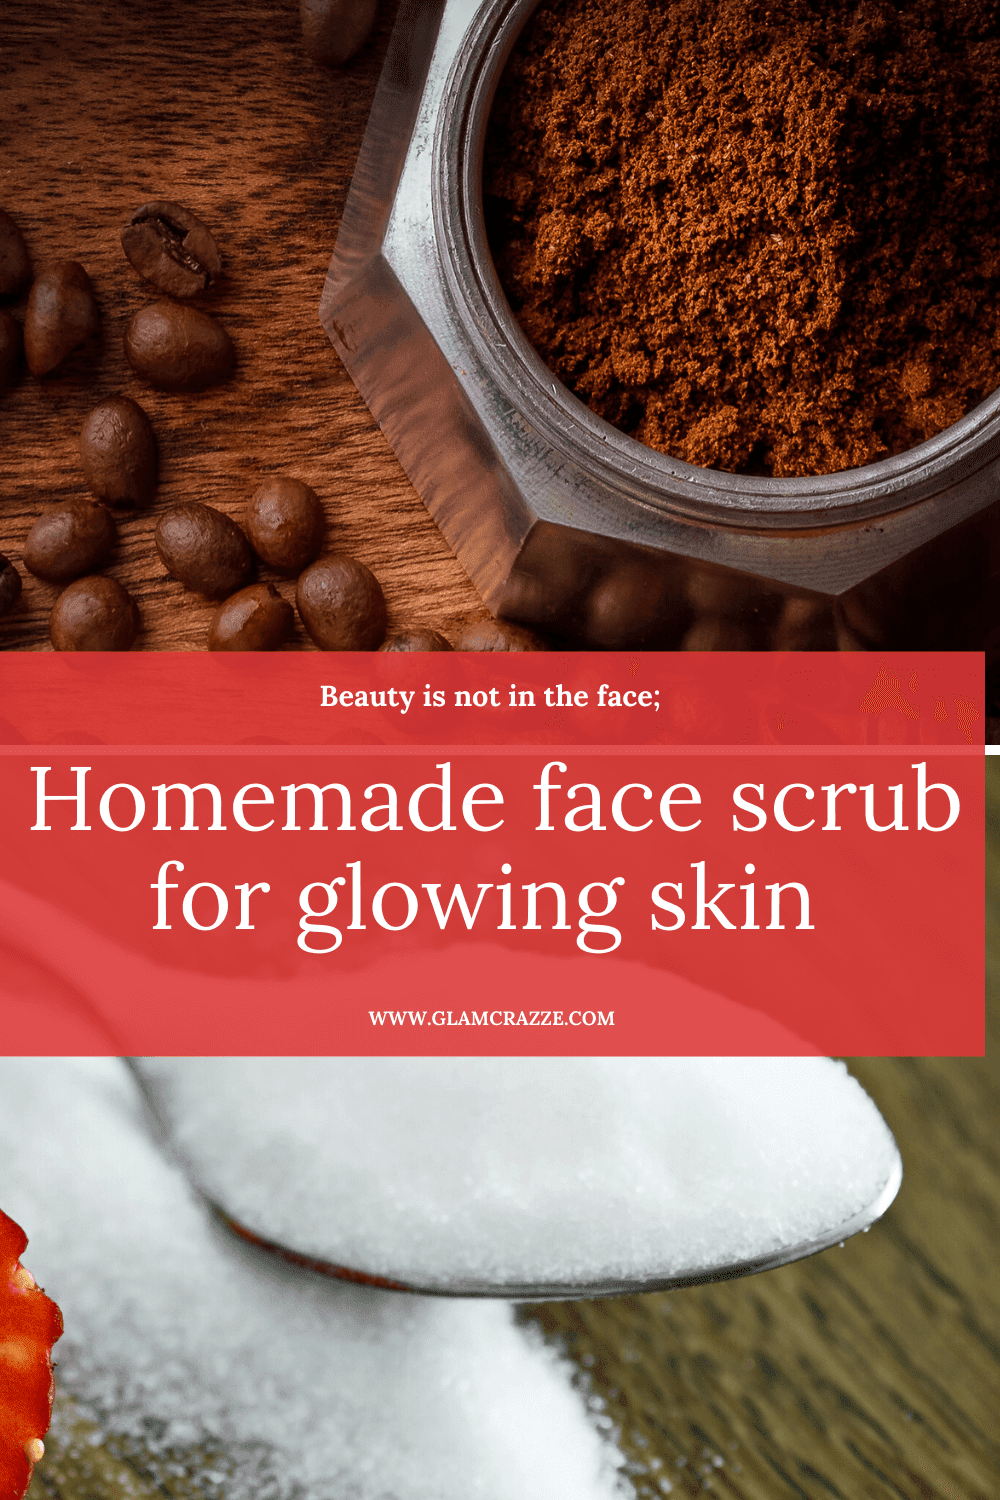 Homemade face scrub for glowing skin using coffee